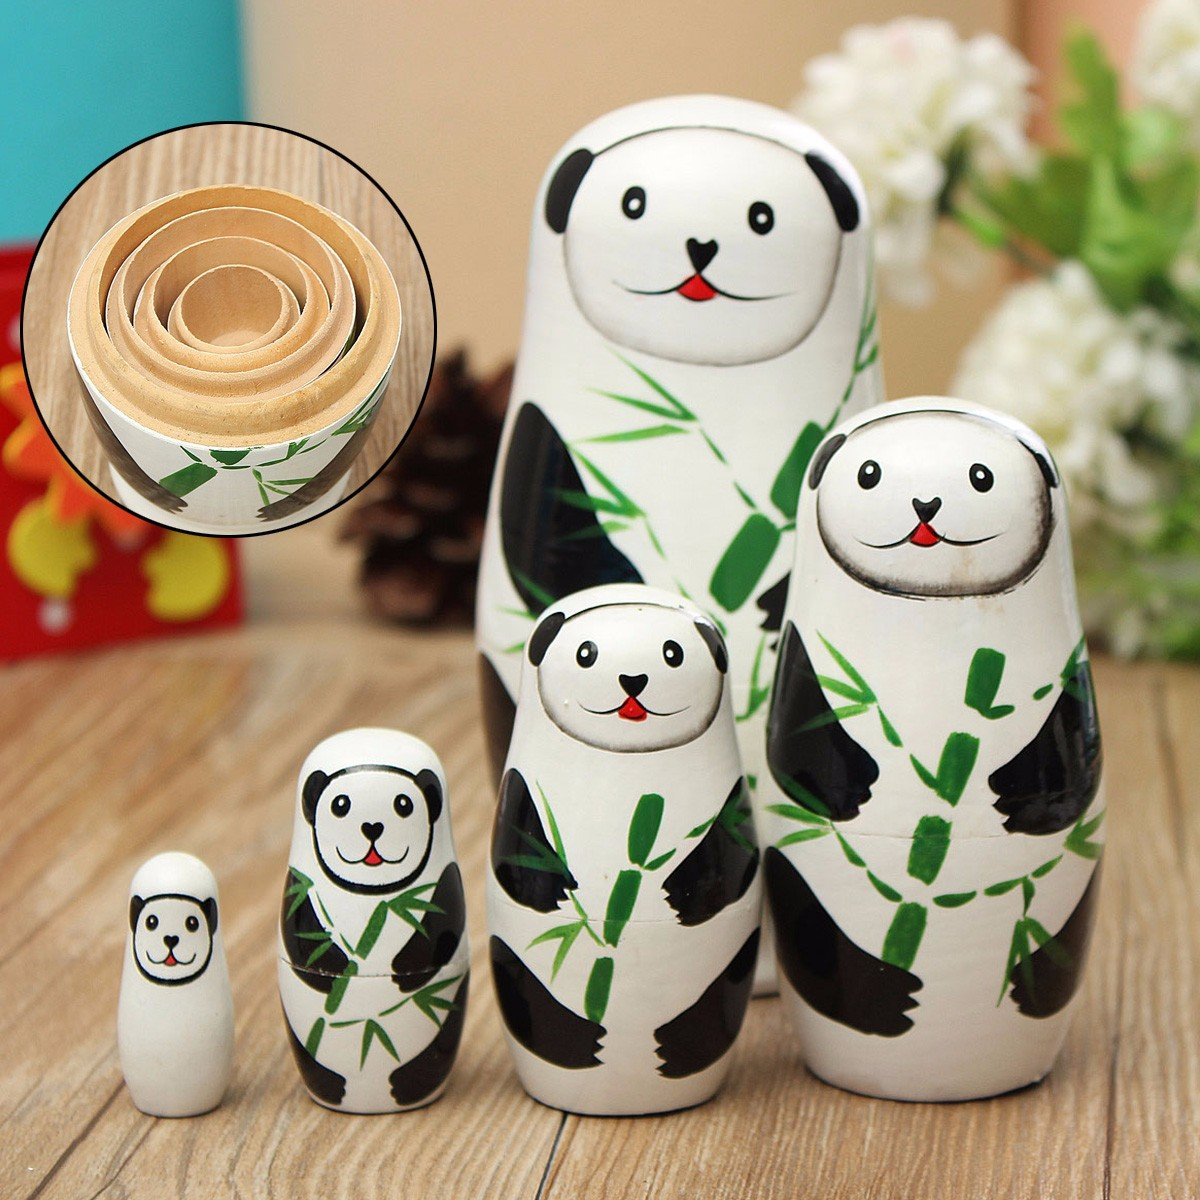 5 Pcs Panda Russian Wood Nesting Doll Matryoshka Stacking Dolls Tricky Toys Creative Gift